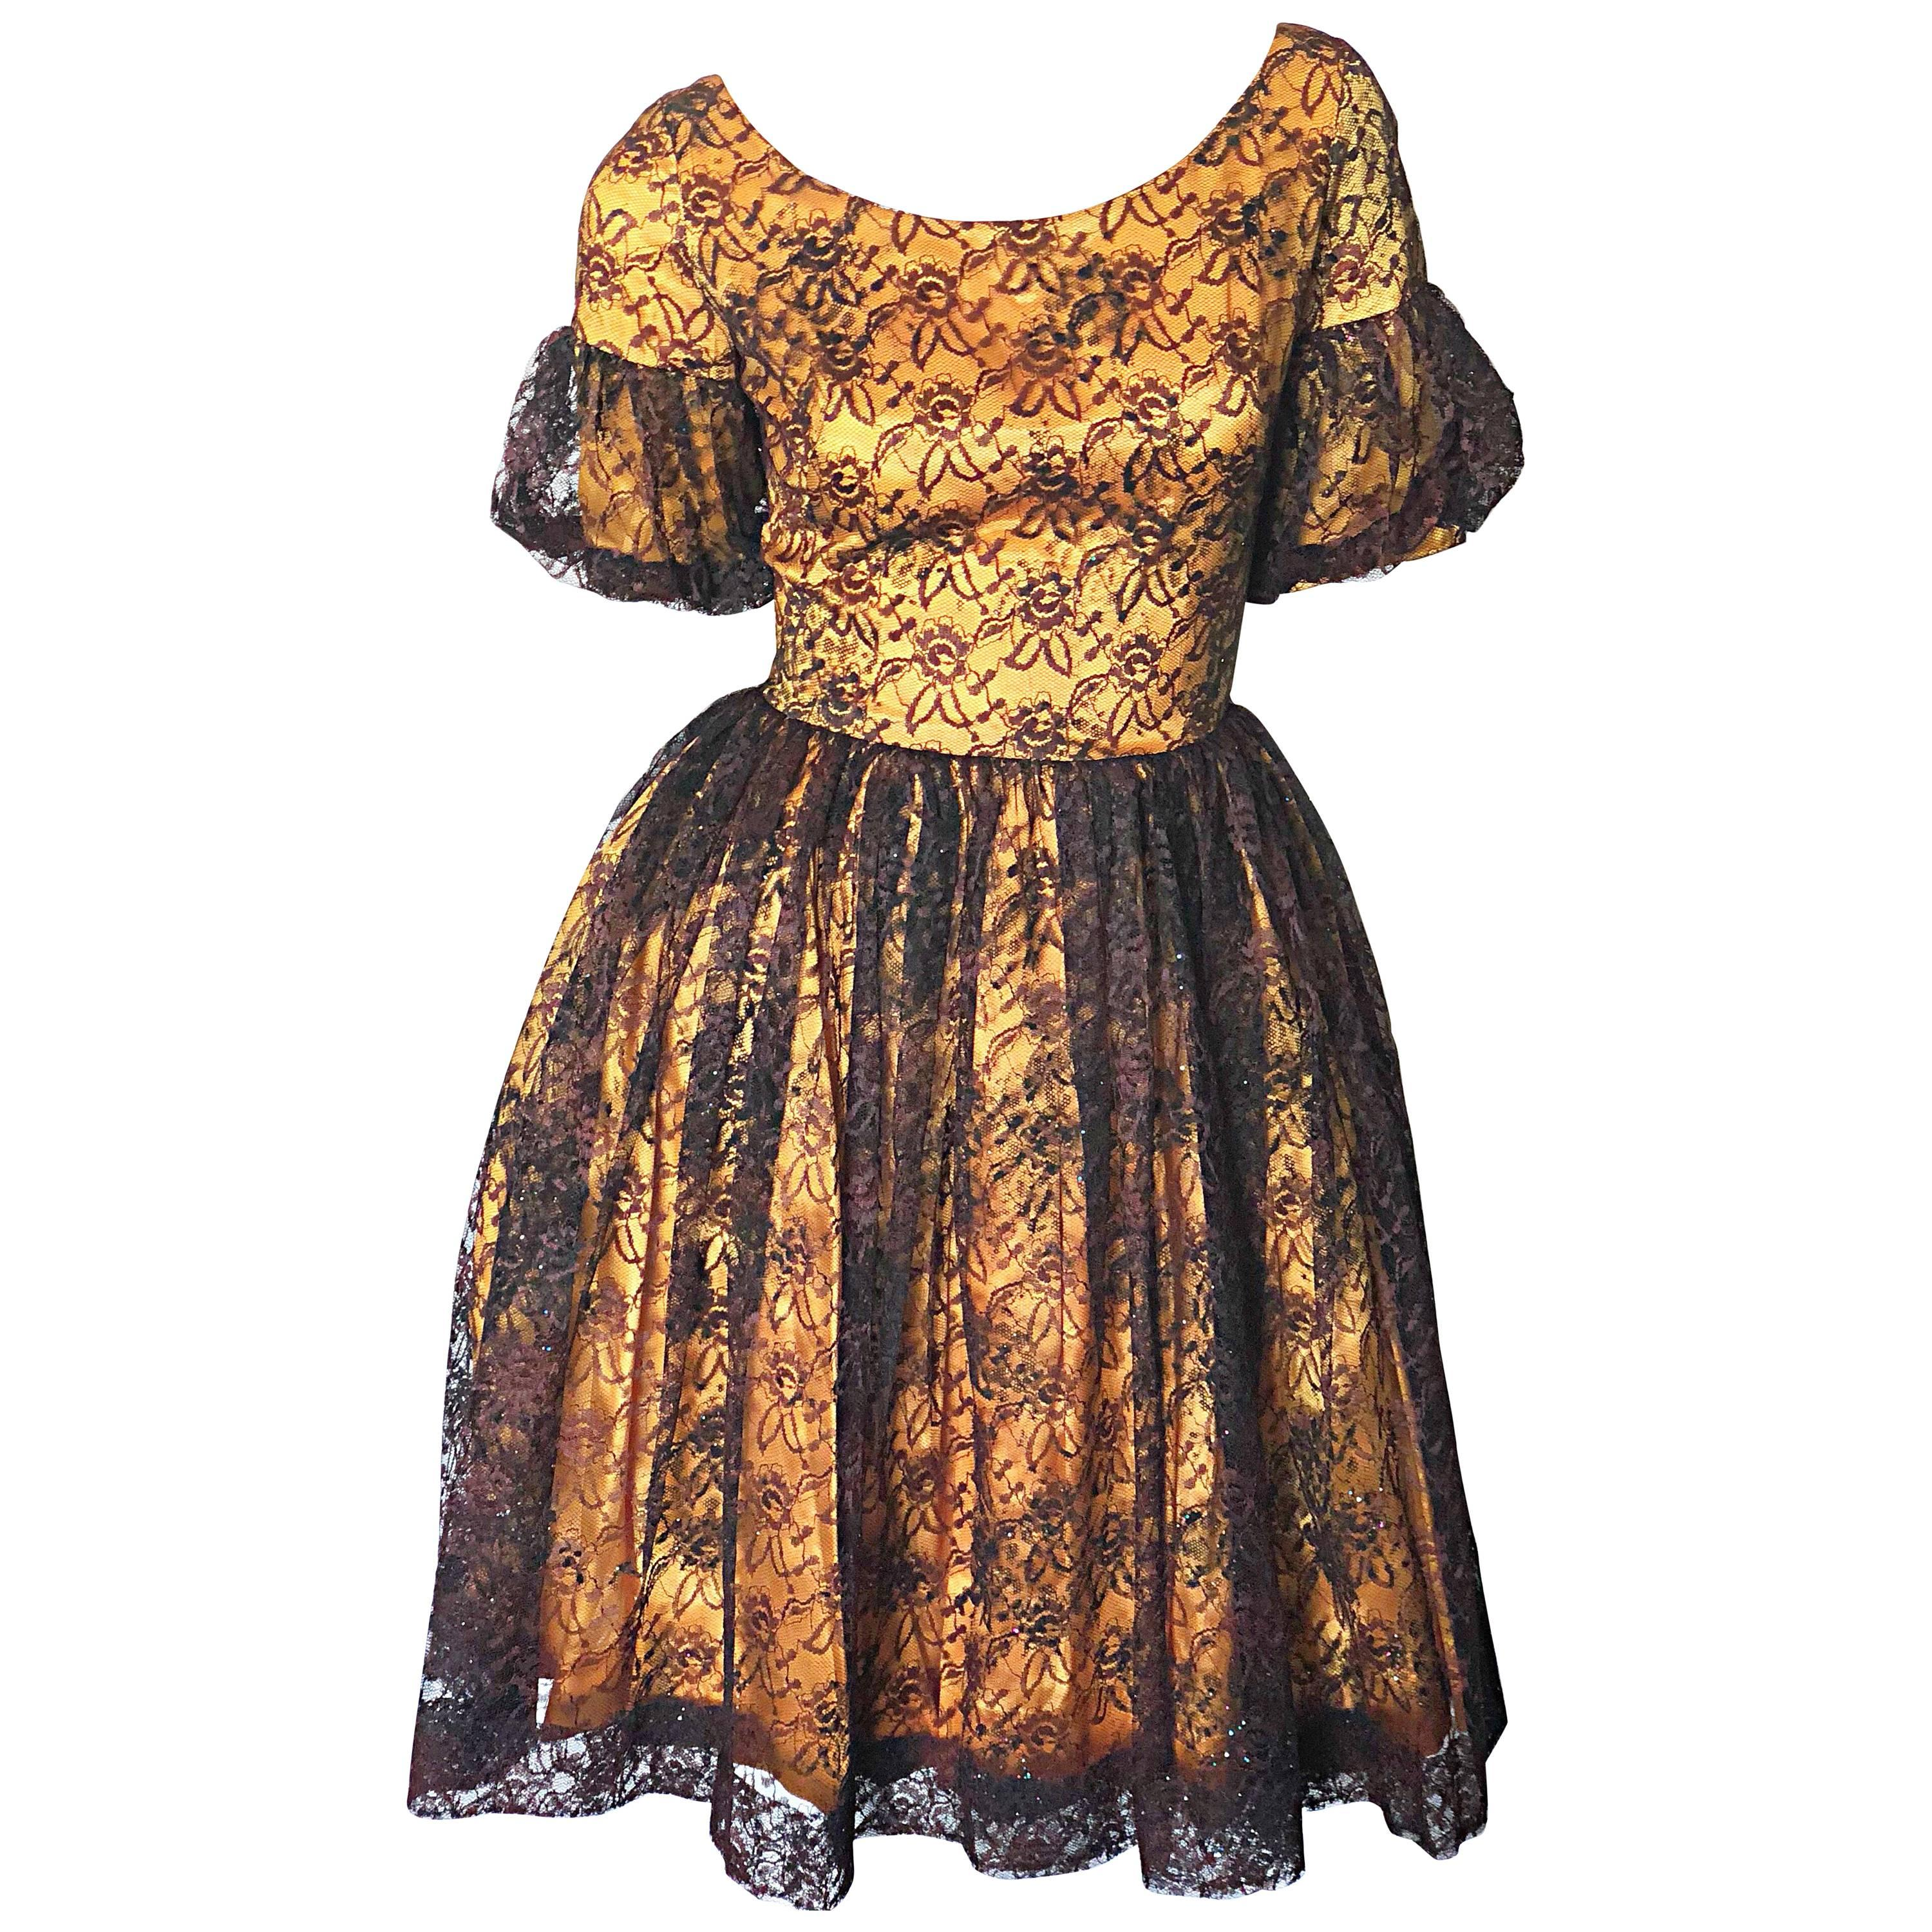 Vintage 50s Dresses with Sleeves